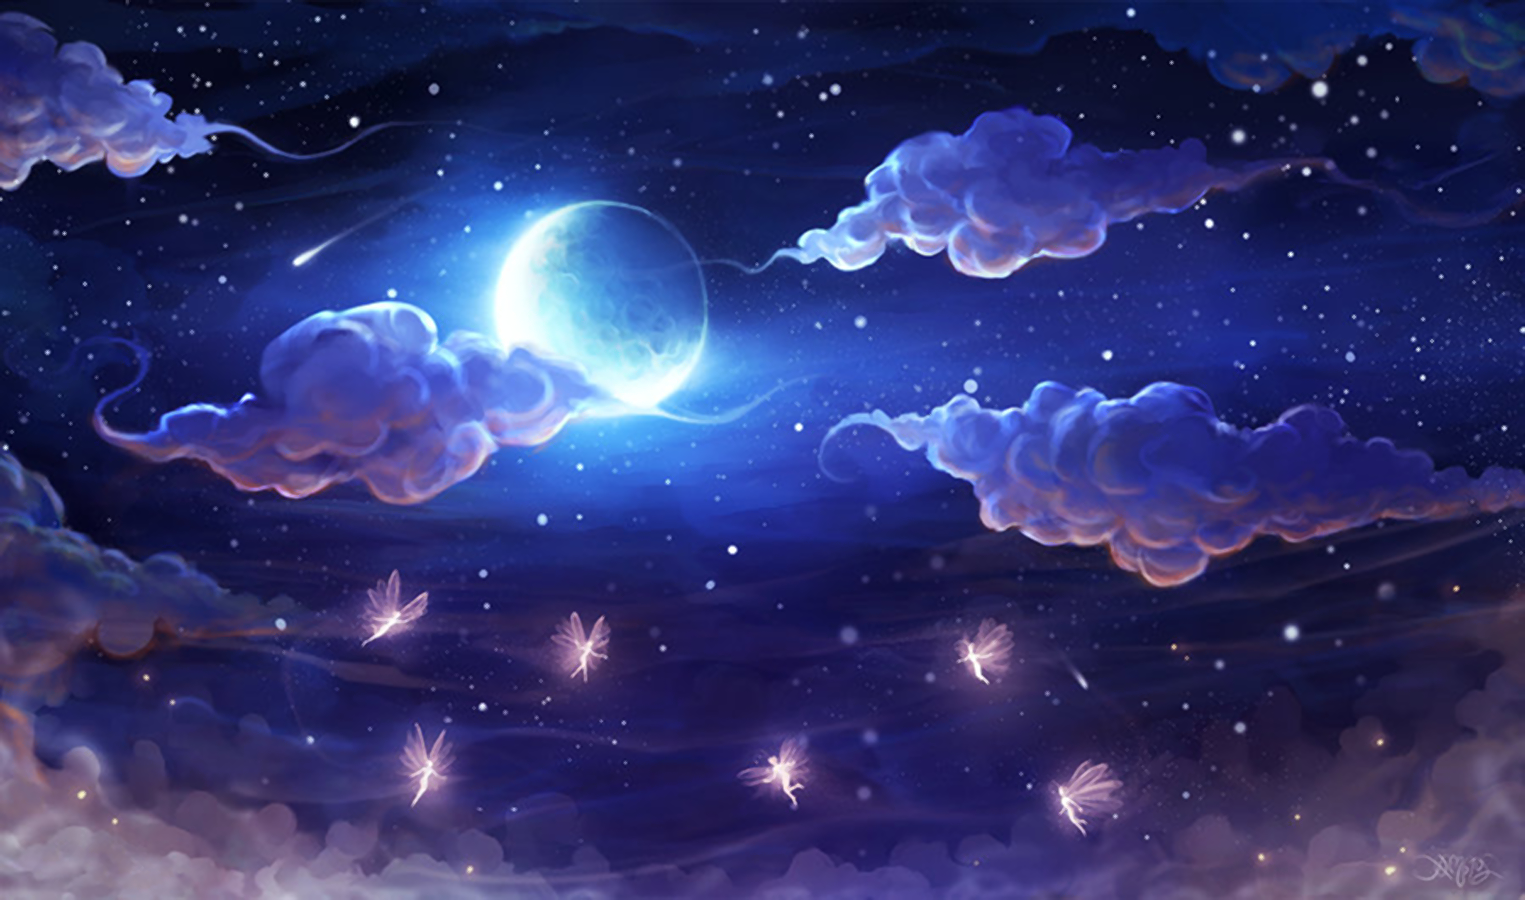 Fantasy Night Sky Wallpaper And Background Image